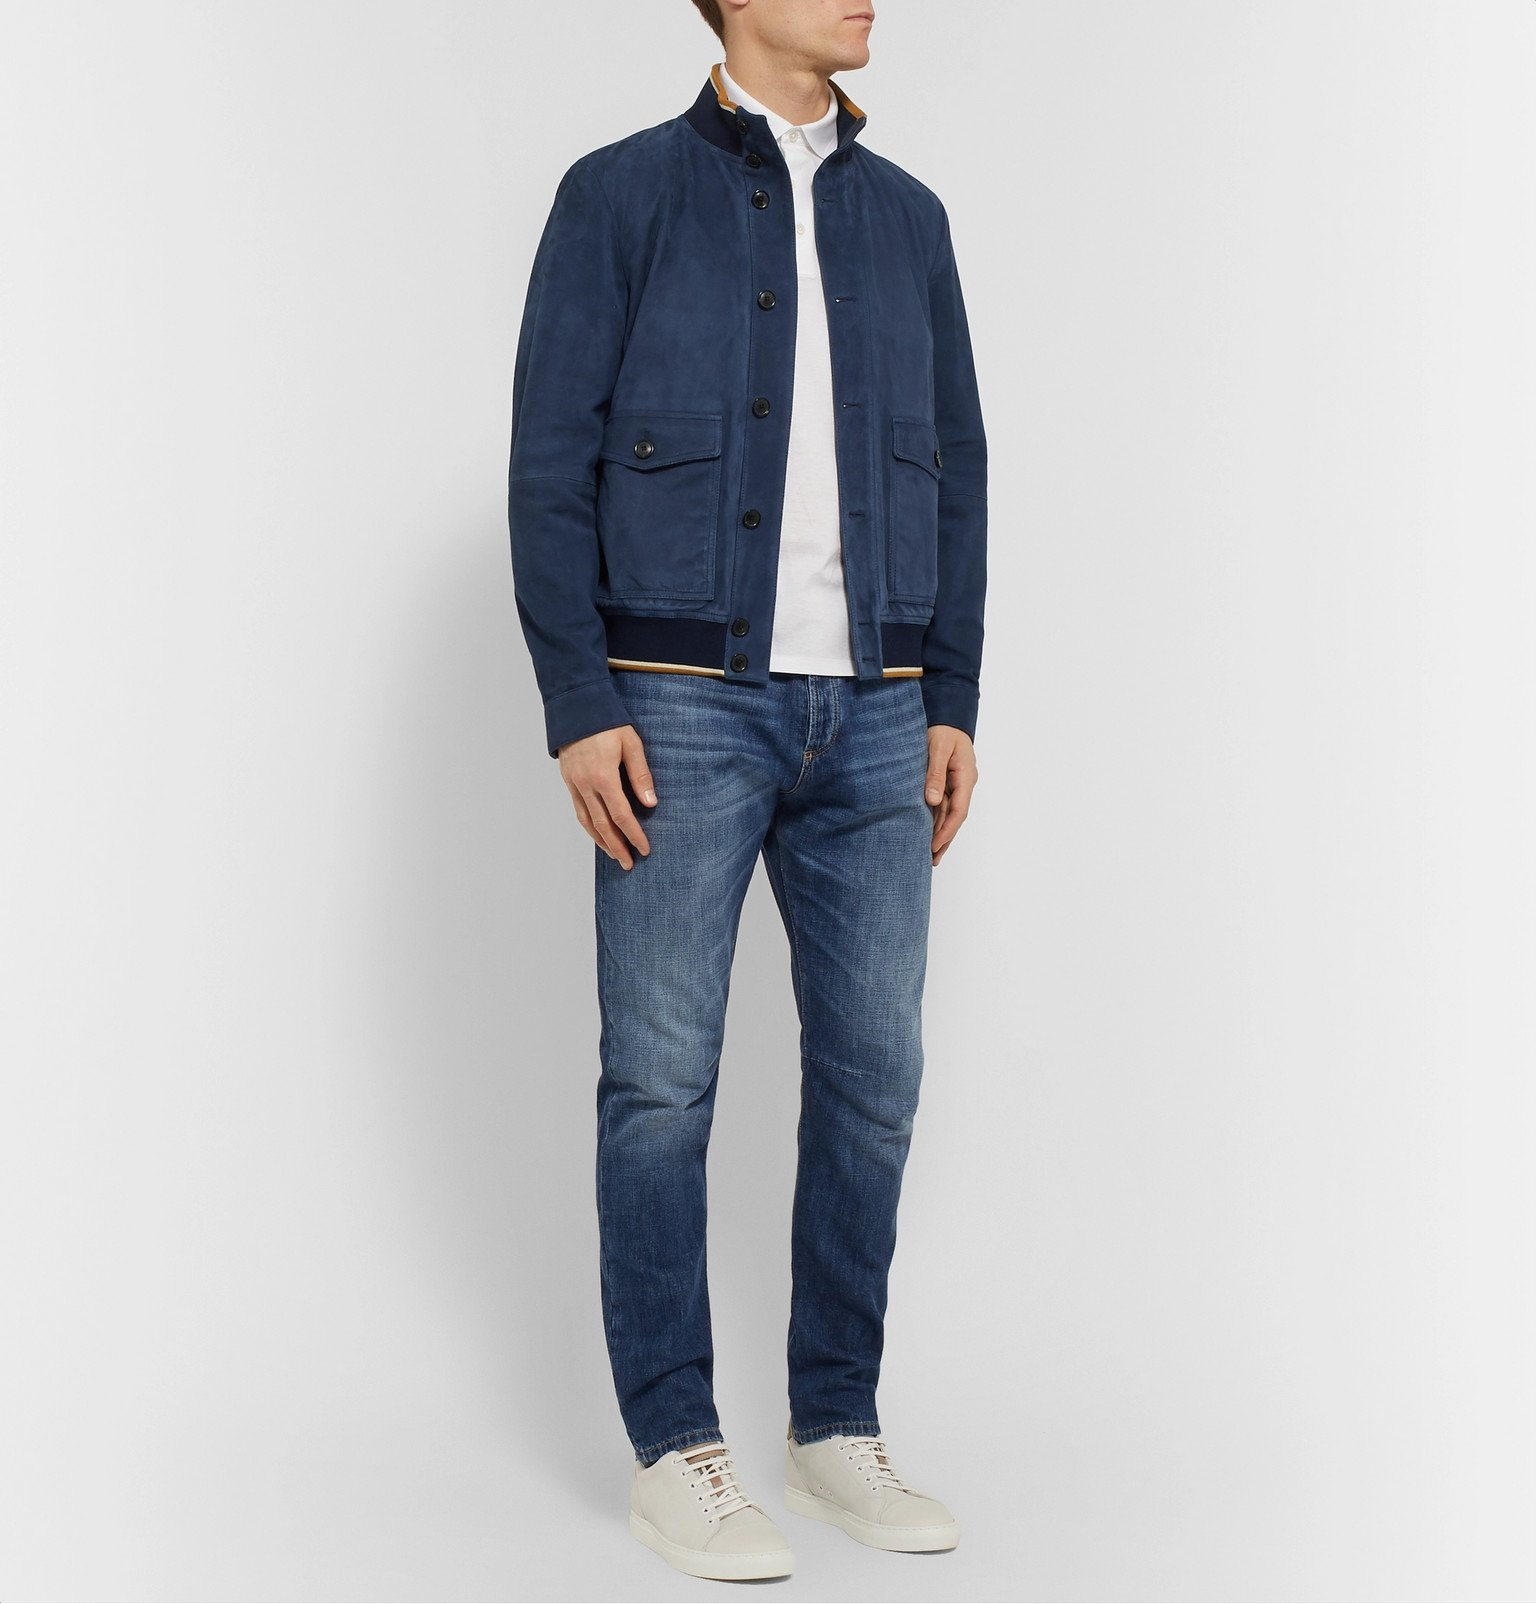 Tod's - Suede Bomber Jacket - Blue